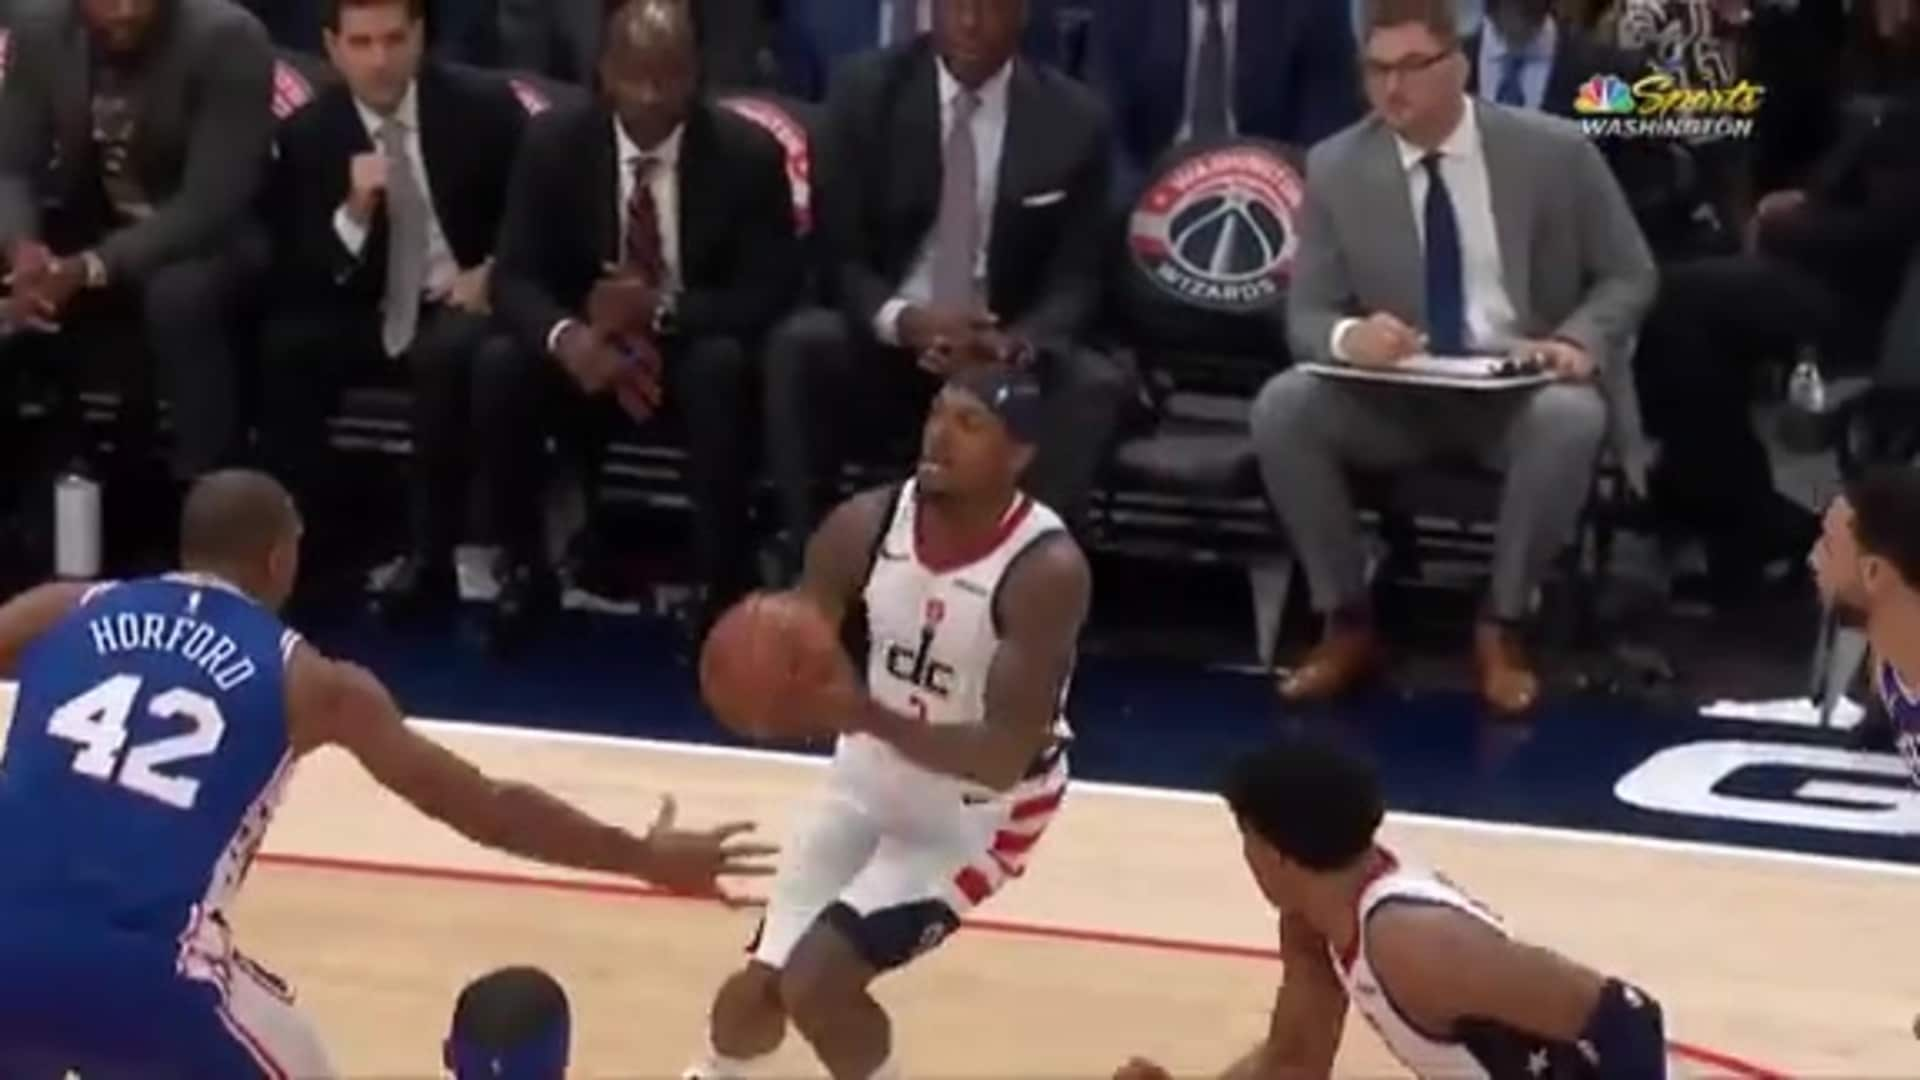 Highlights: Bradley Beal vs. Sixers 12/05/19